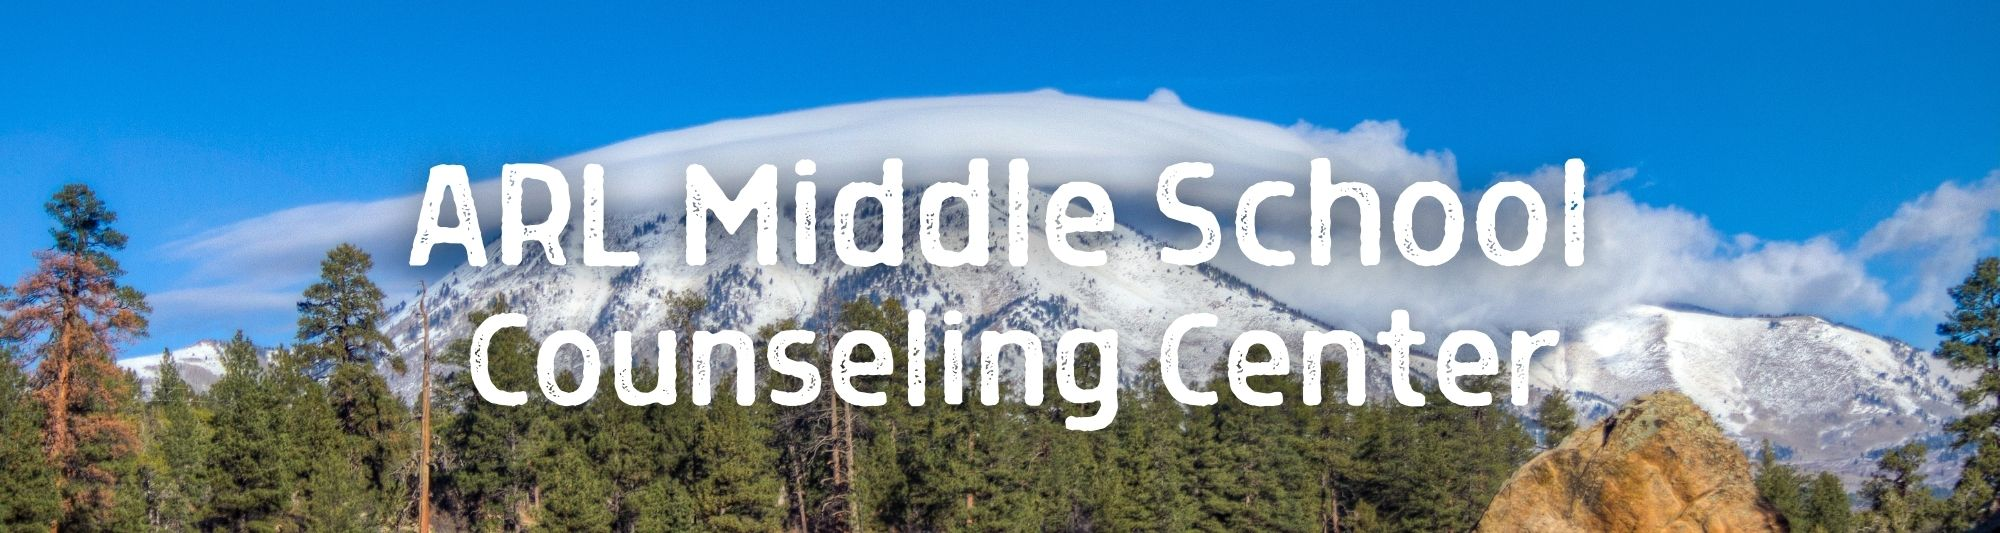 ARL Middle School Counseling Center